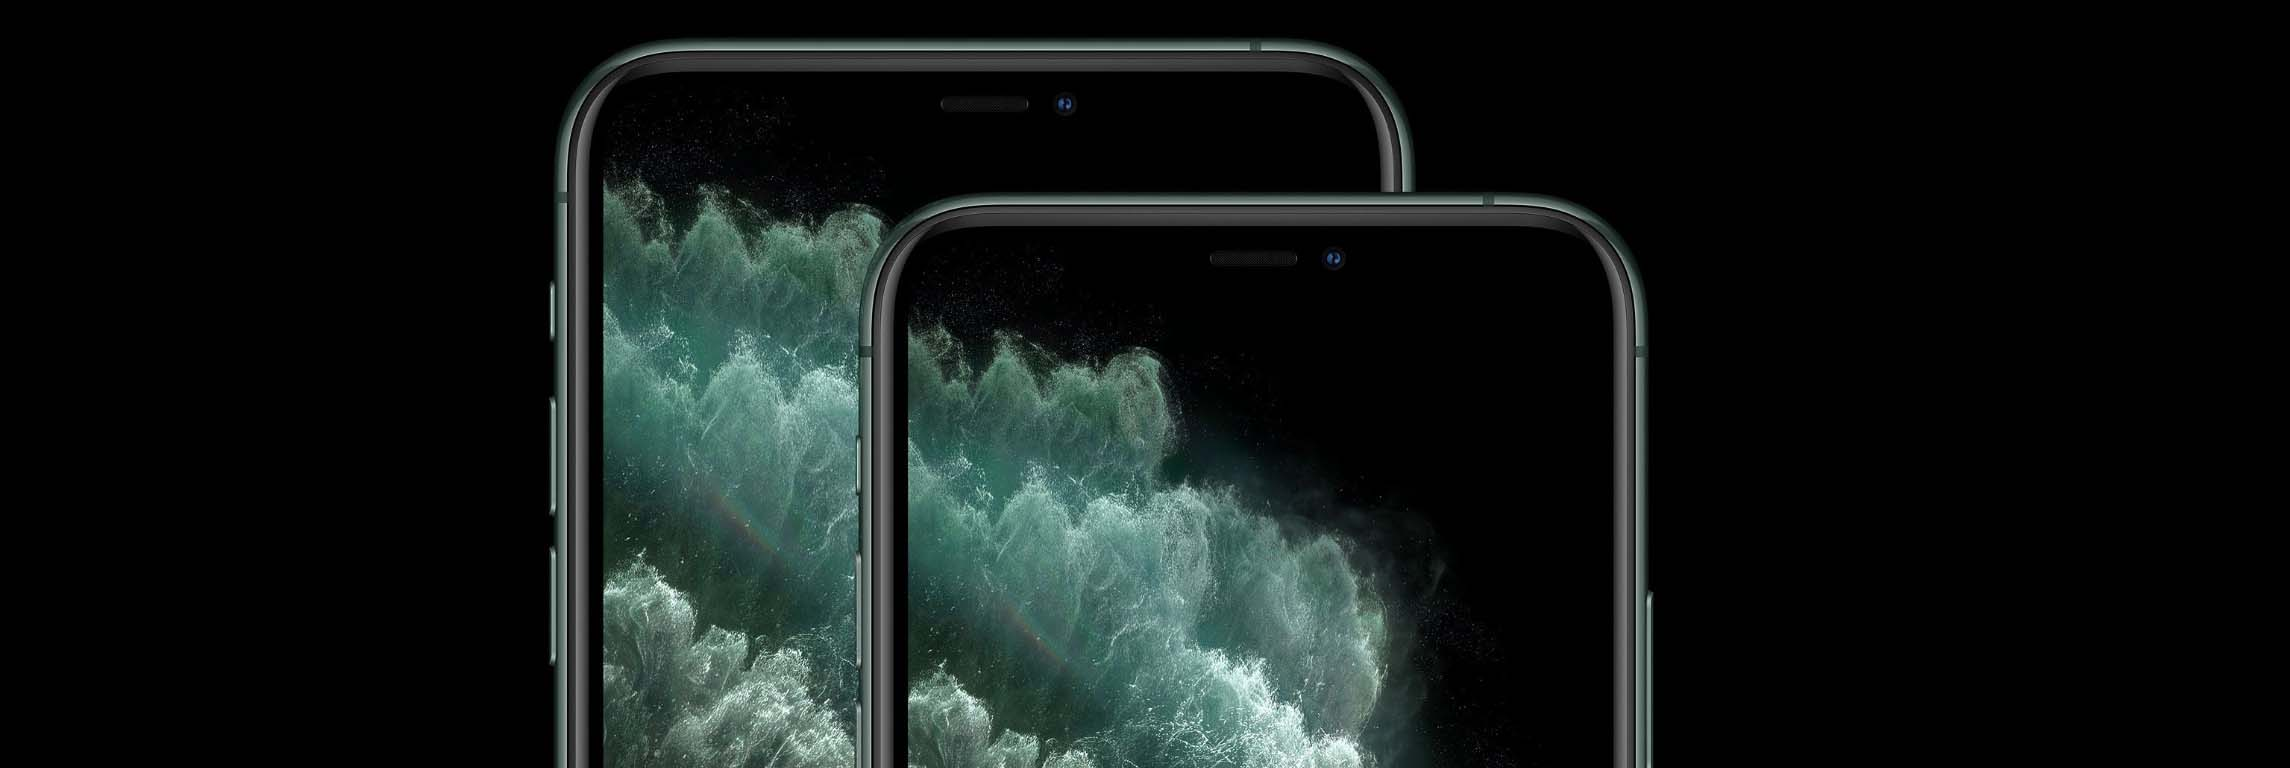 Super Retina XDR iPhone 11 Pro